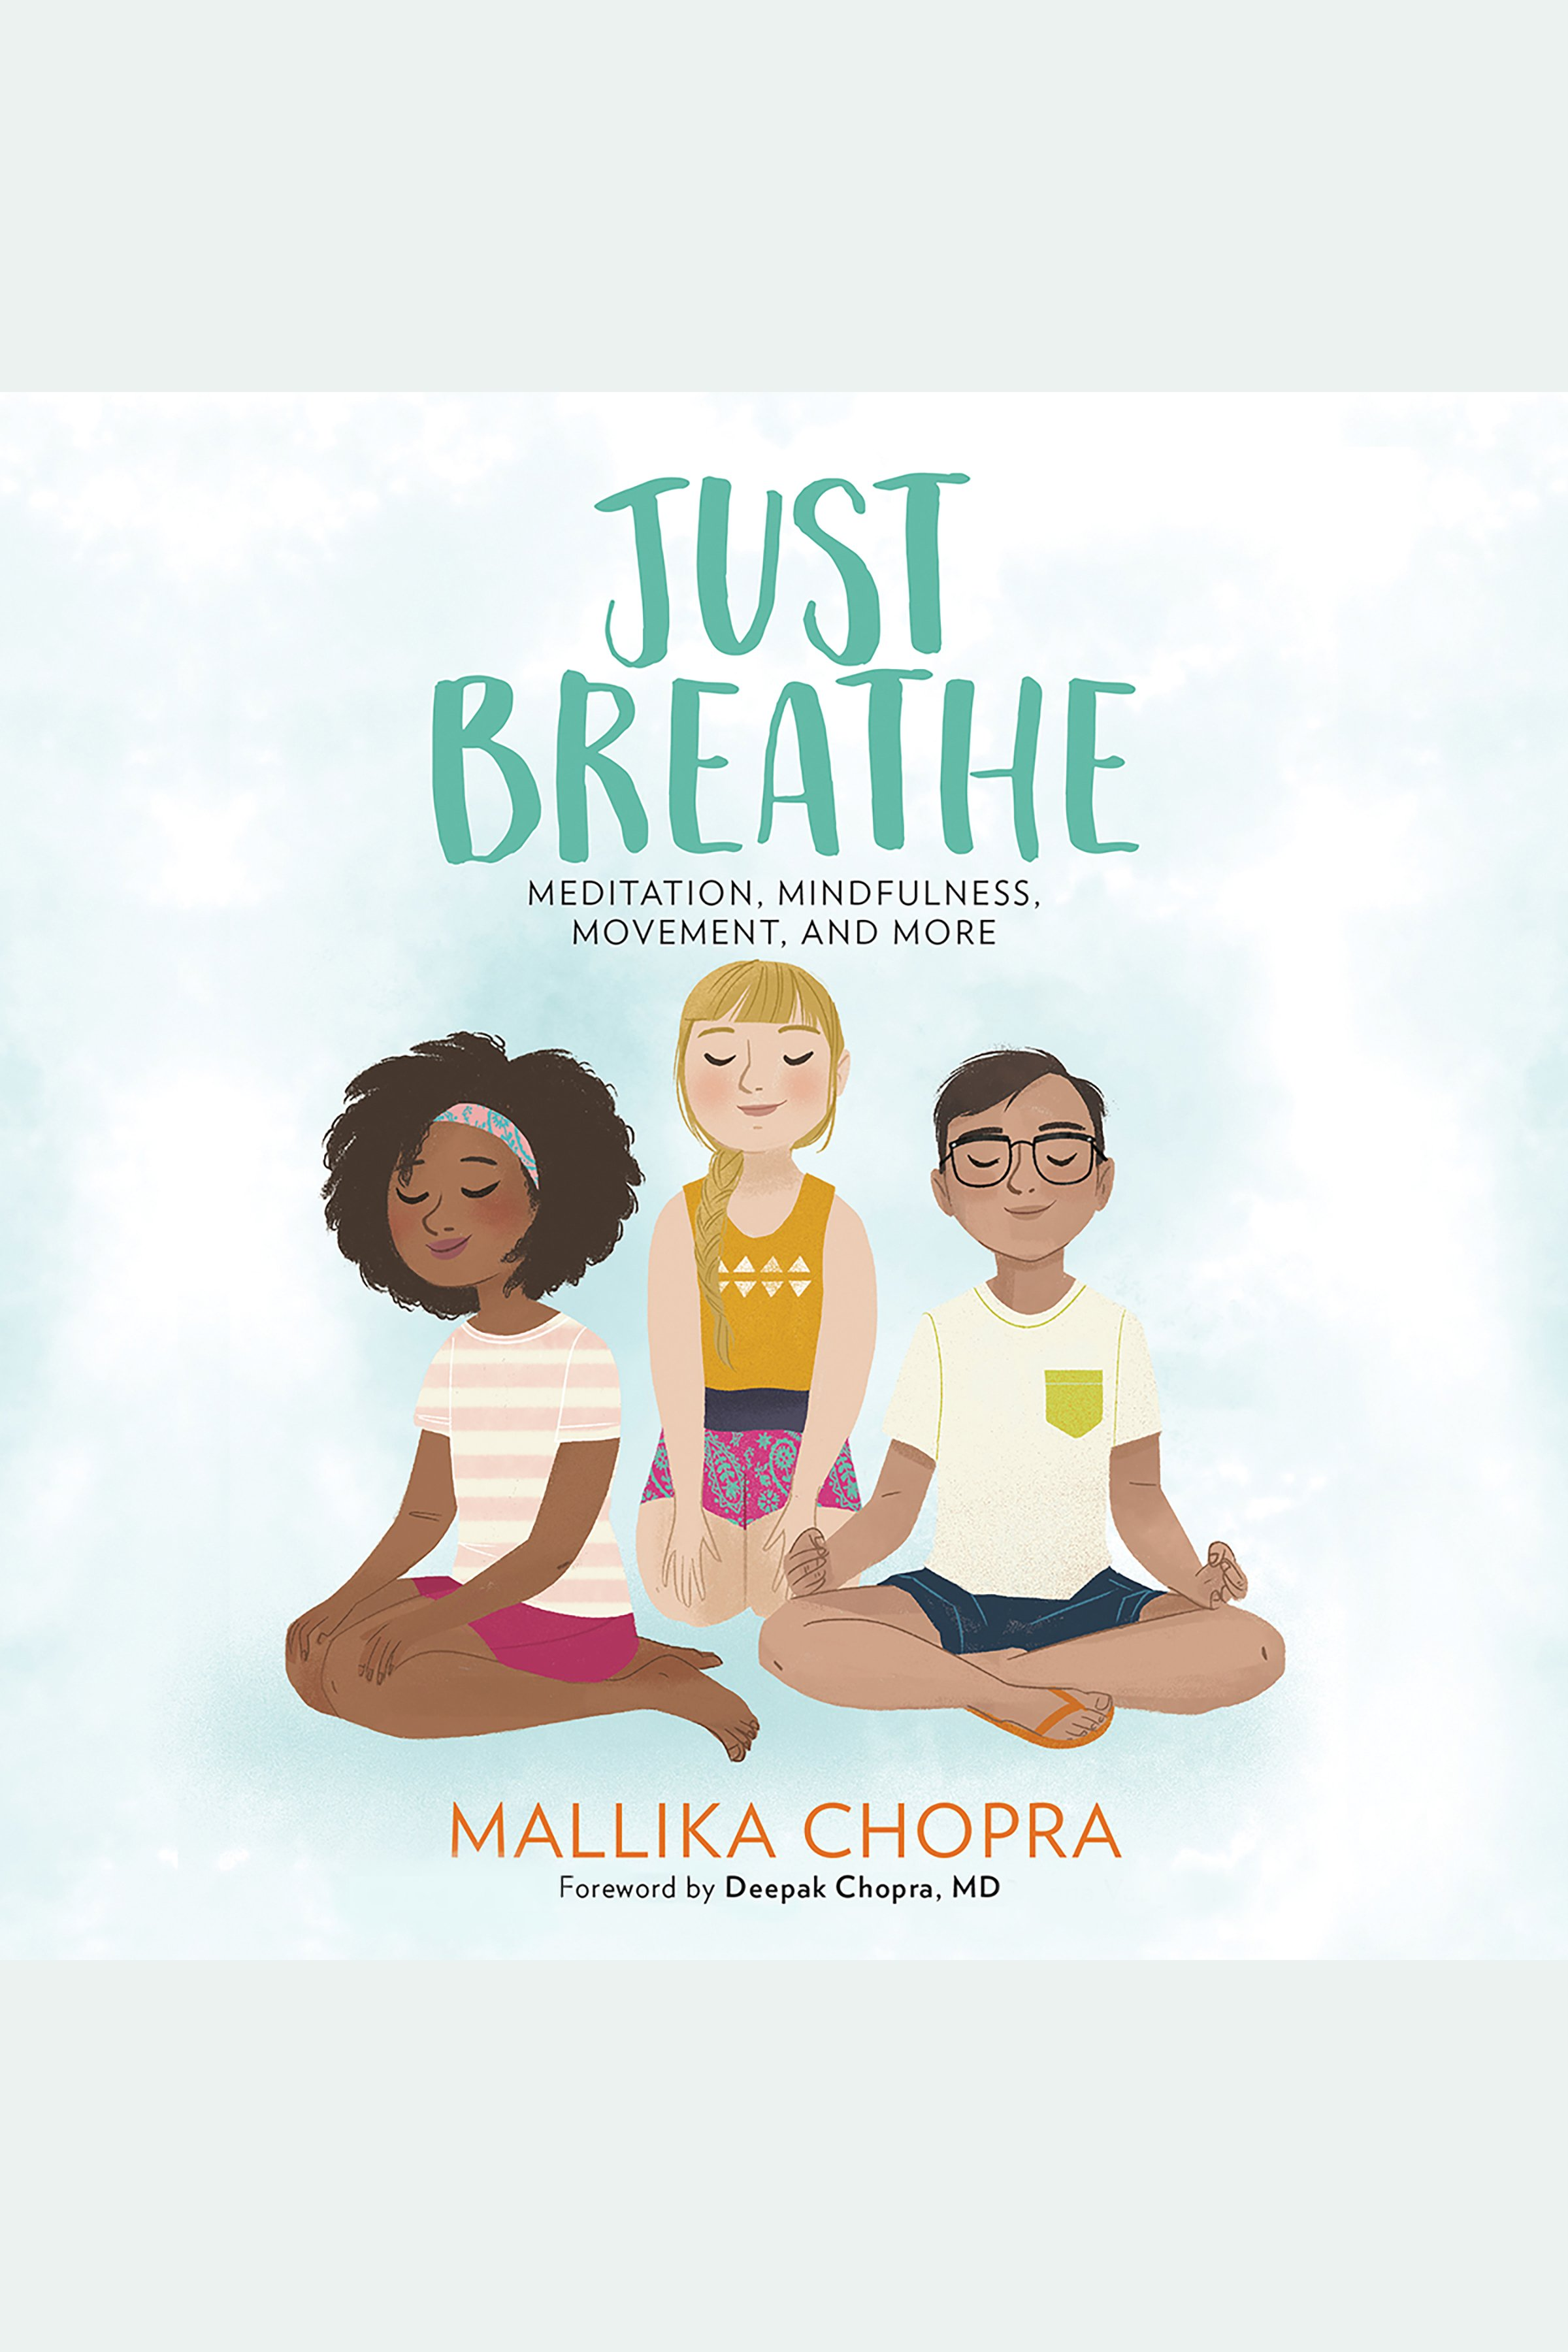 Just Breathe Meditation, Mindfulness, Movement, and More